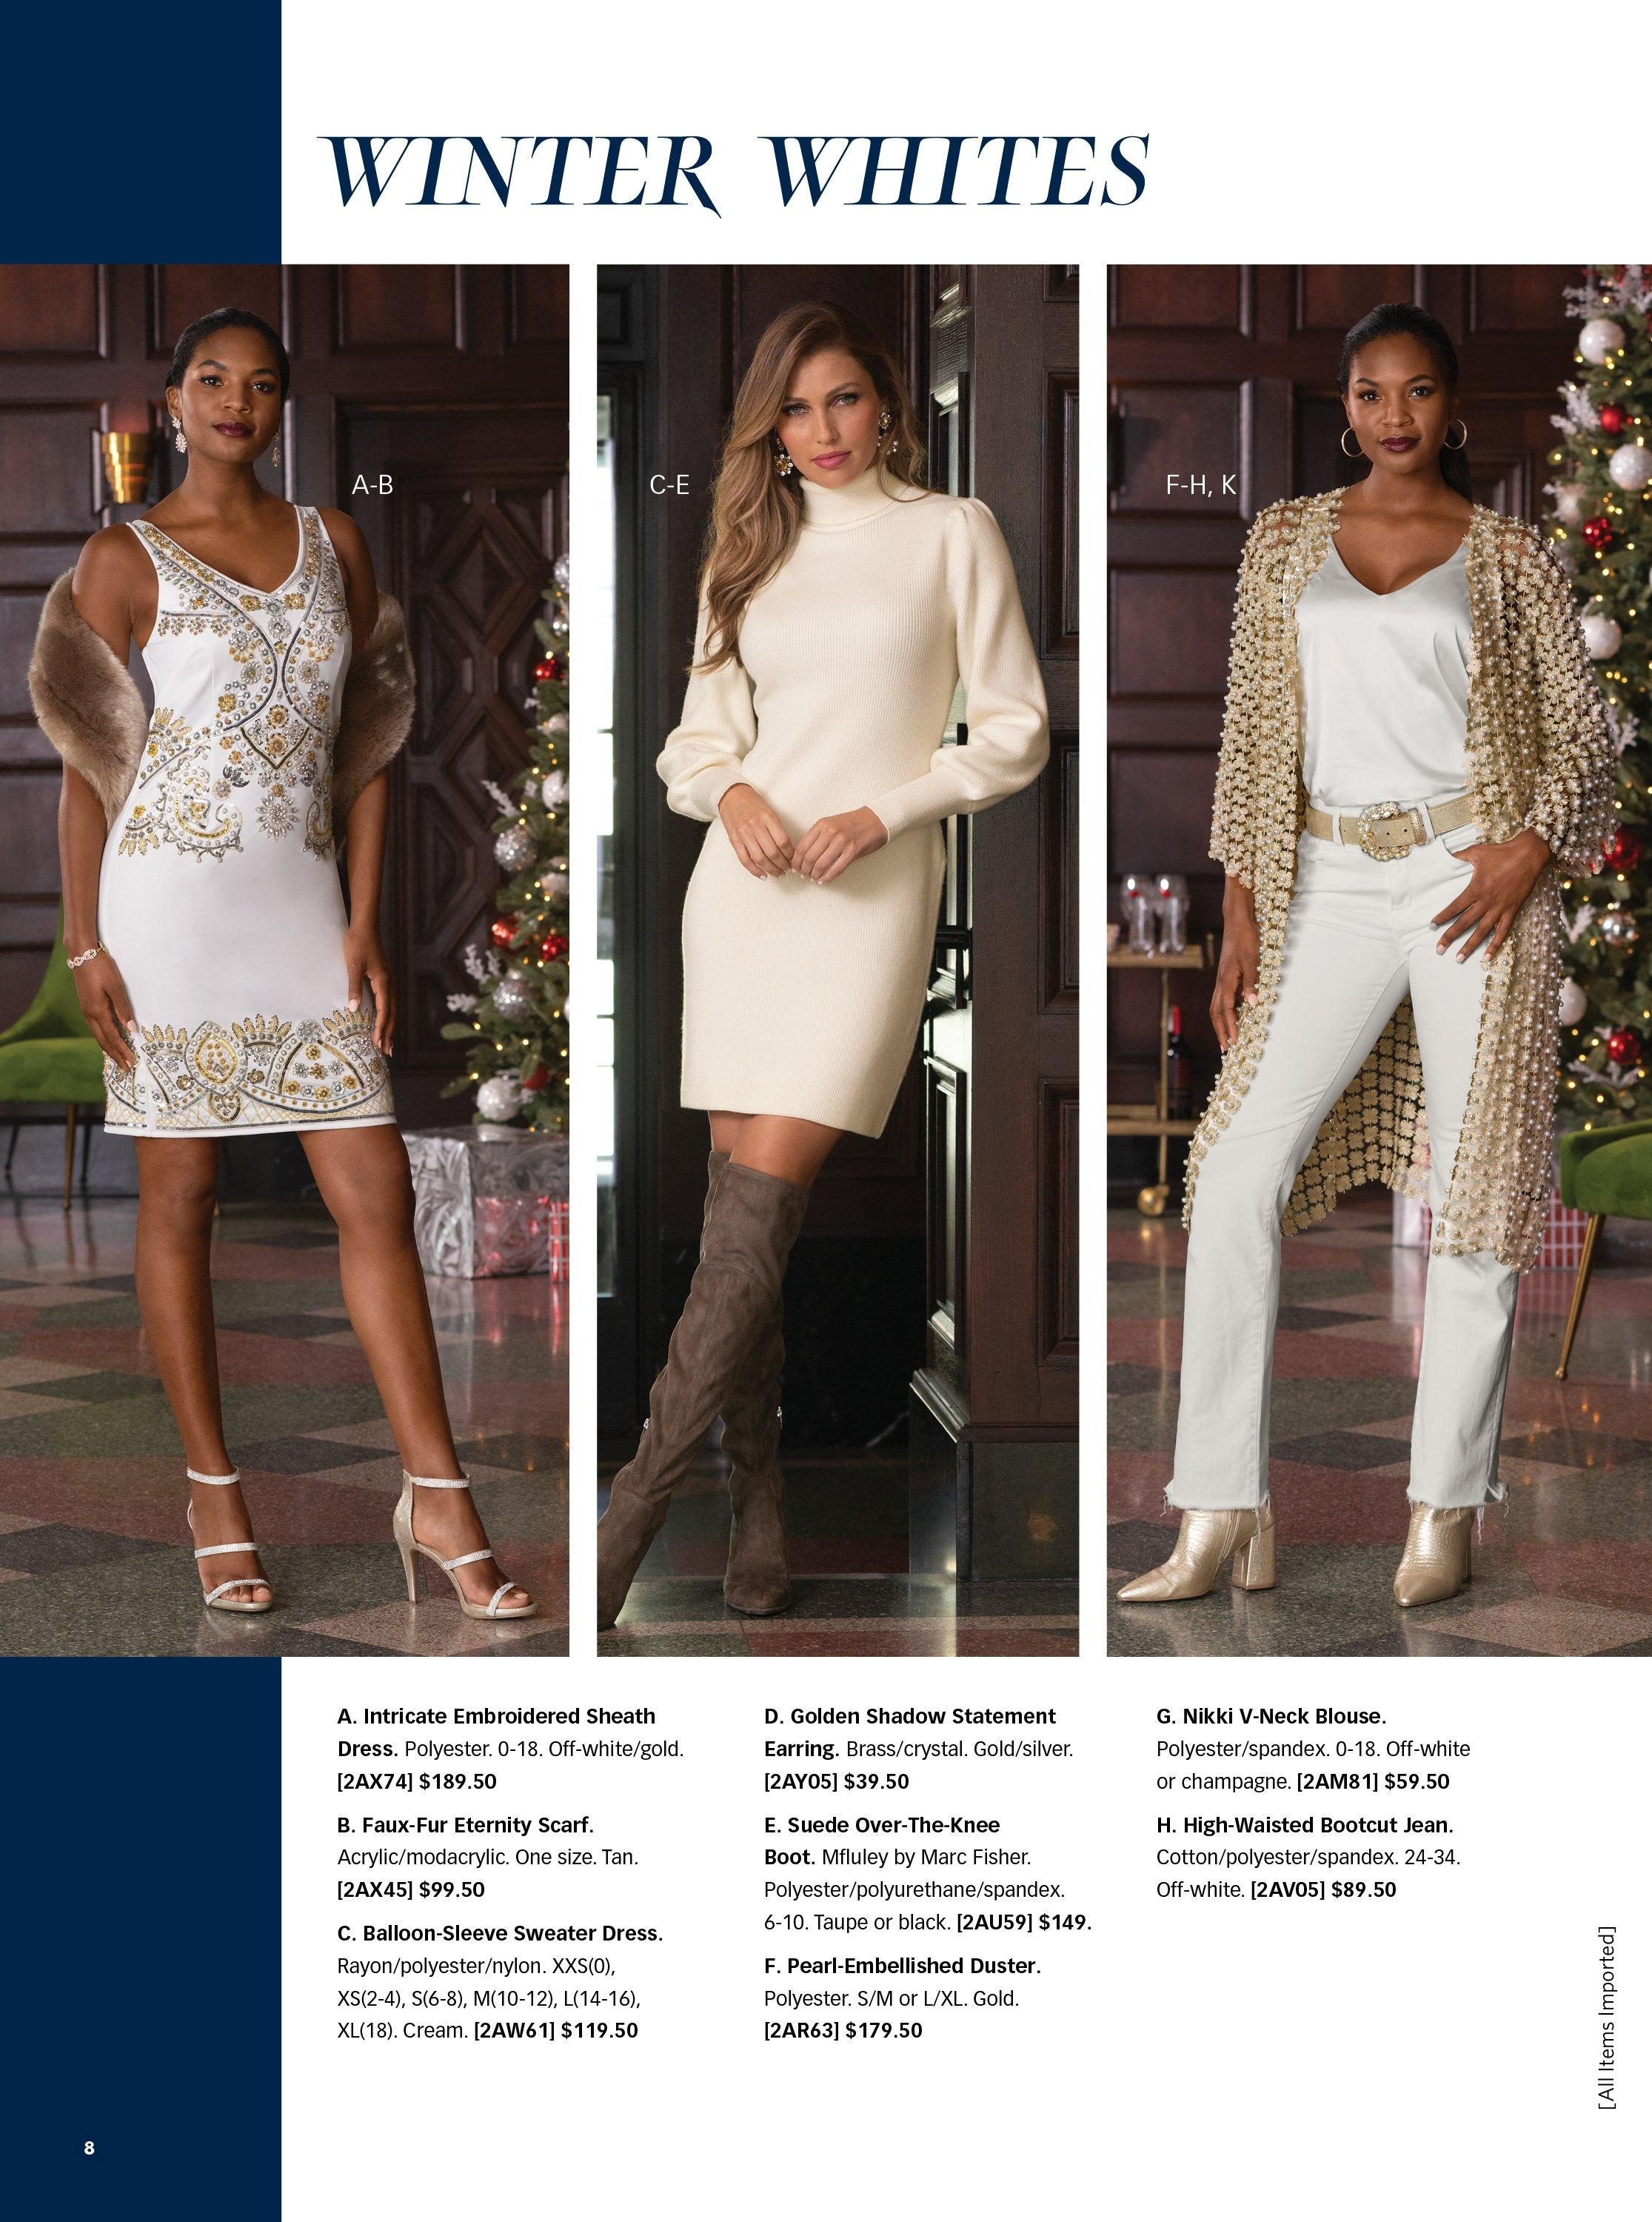 left model wearing a white sleeveless embroidered sheath dress and faux fur eternity scarf. middle model wearing a white balloon-sleeve turtleneck sweater dress and brown over-the-knee boots. right model wearing a pearl embellished duster, white v-neck tank top, gold jewel embellished belt, white bootcut jeans, and gold heeled booties.